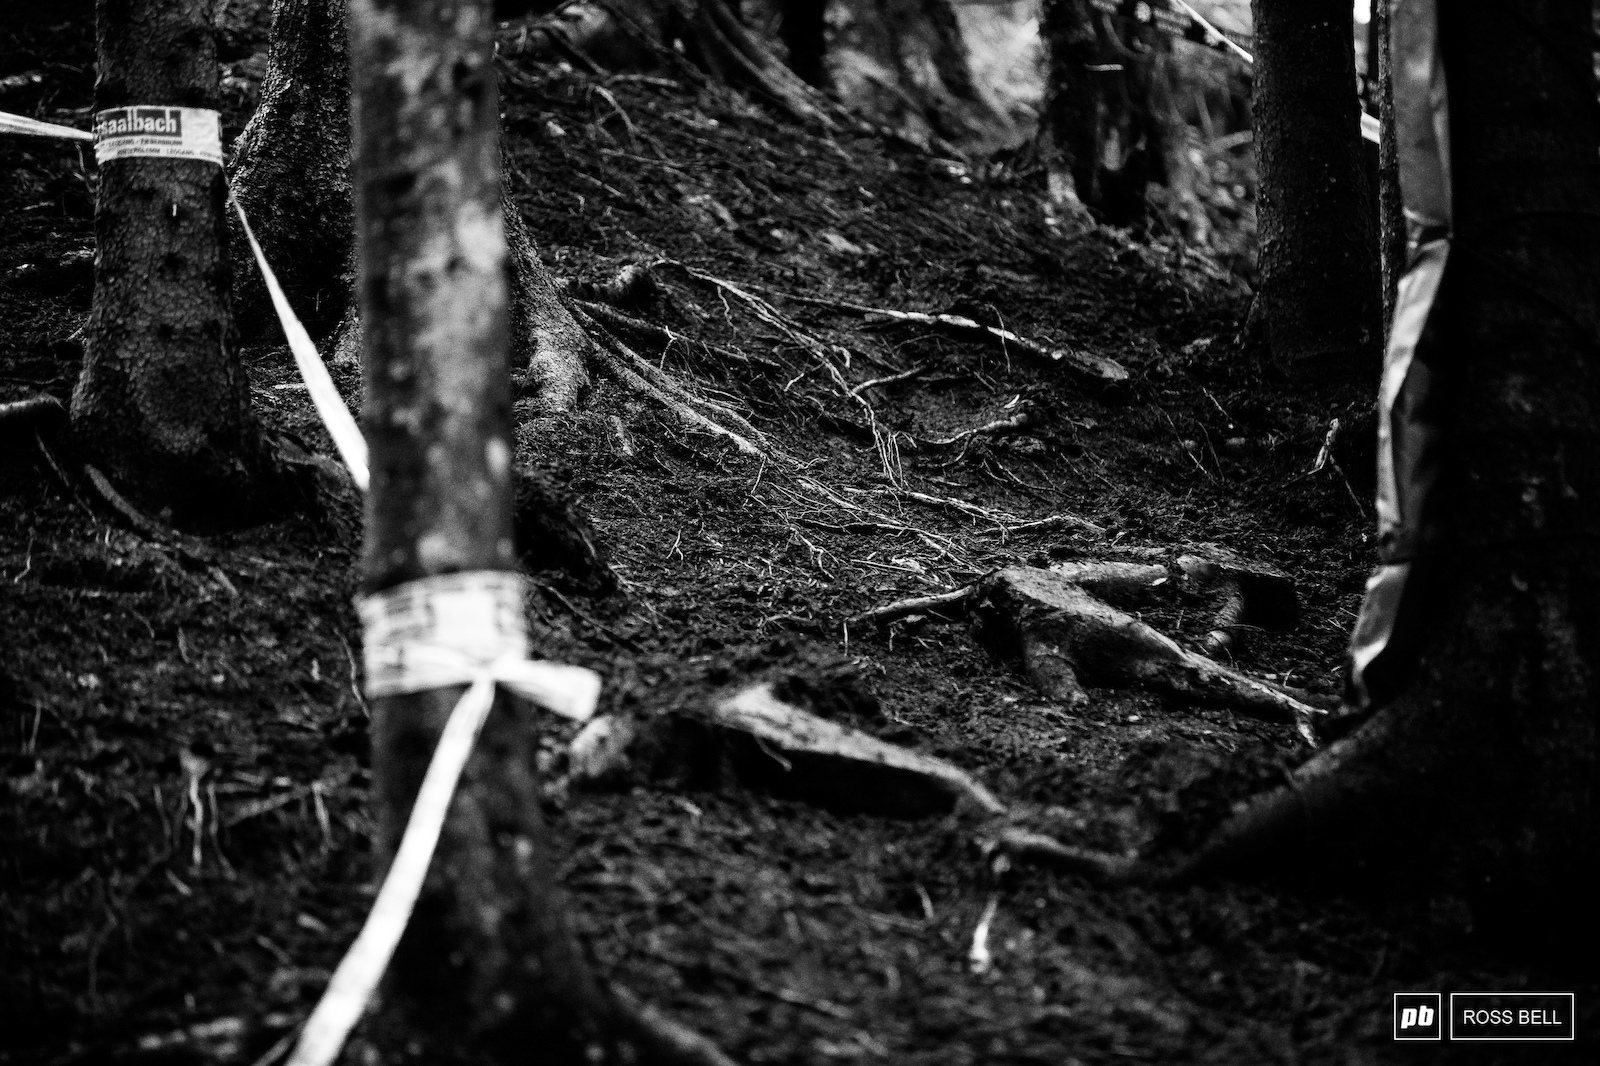 The roots are becoming more and more apparent with each passing wheel.